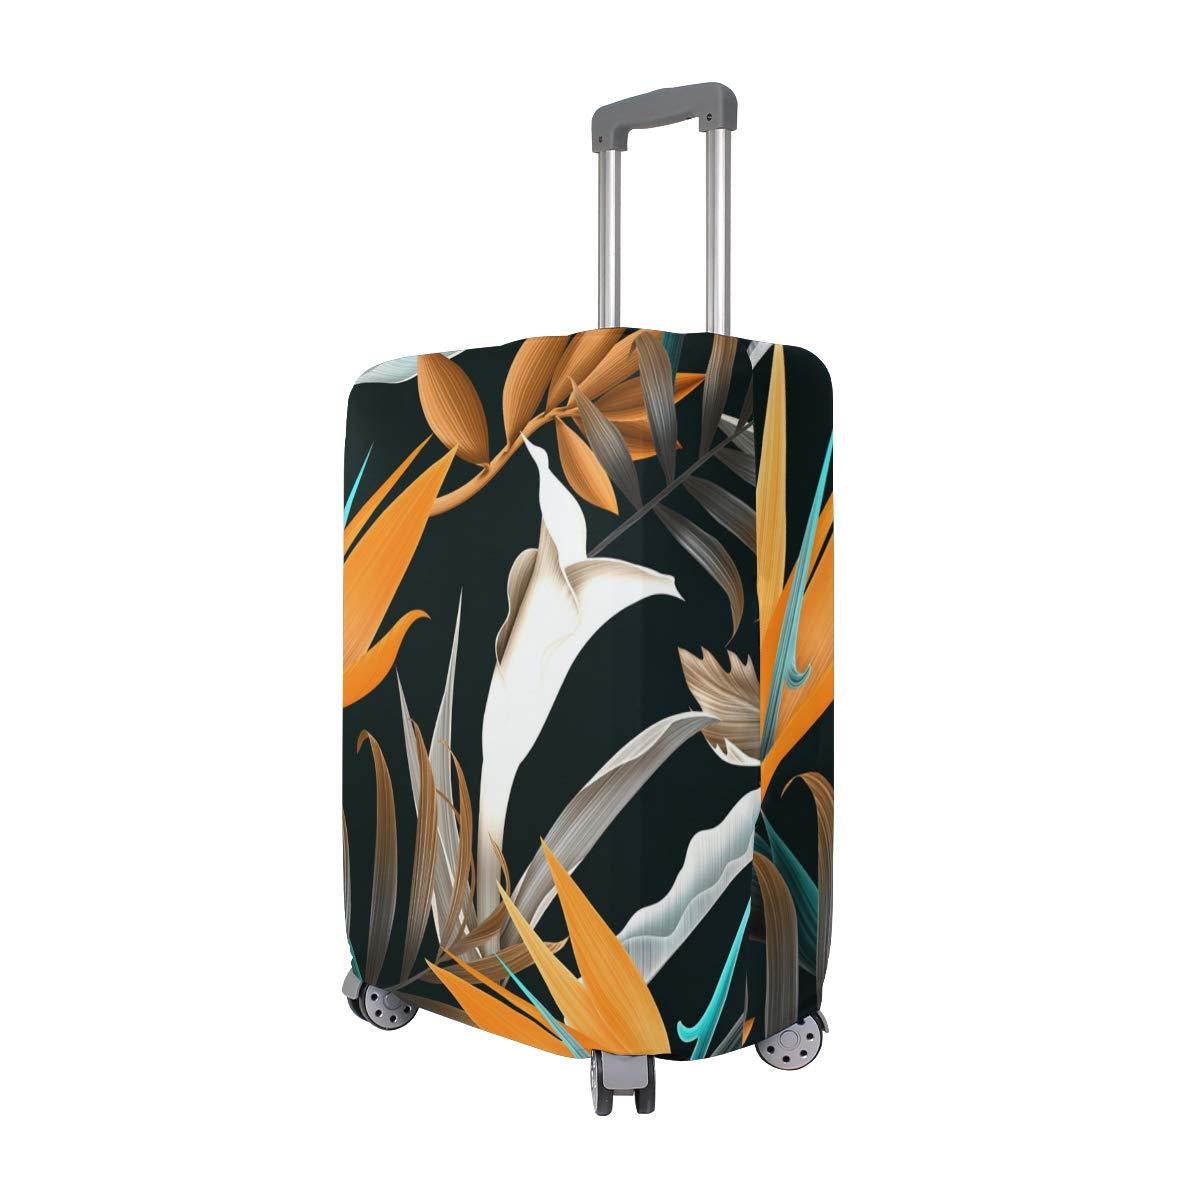 Tropical Plant Travel Luggage Protector Suitcase Cover 18-32 Inch for Travel Luggage Protective Suitcase Covers